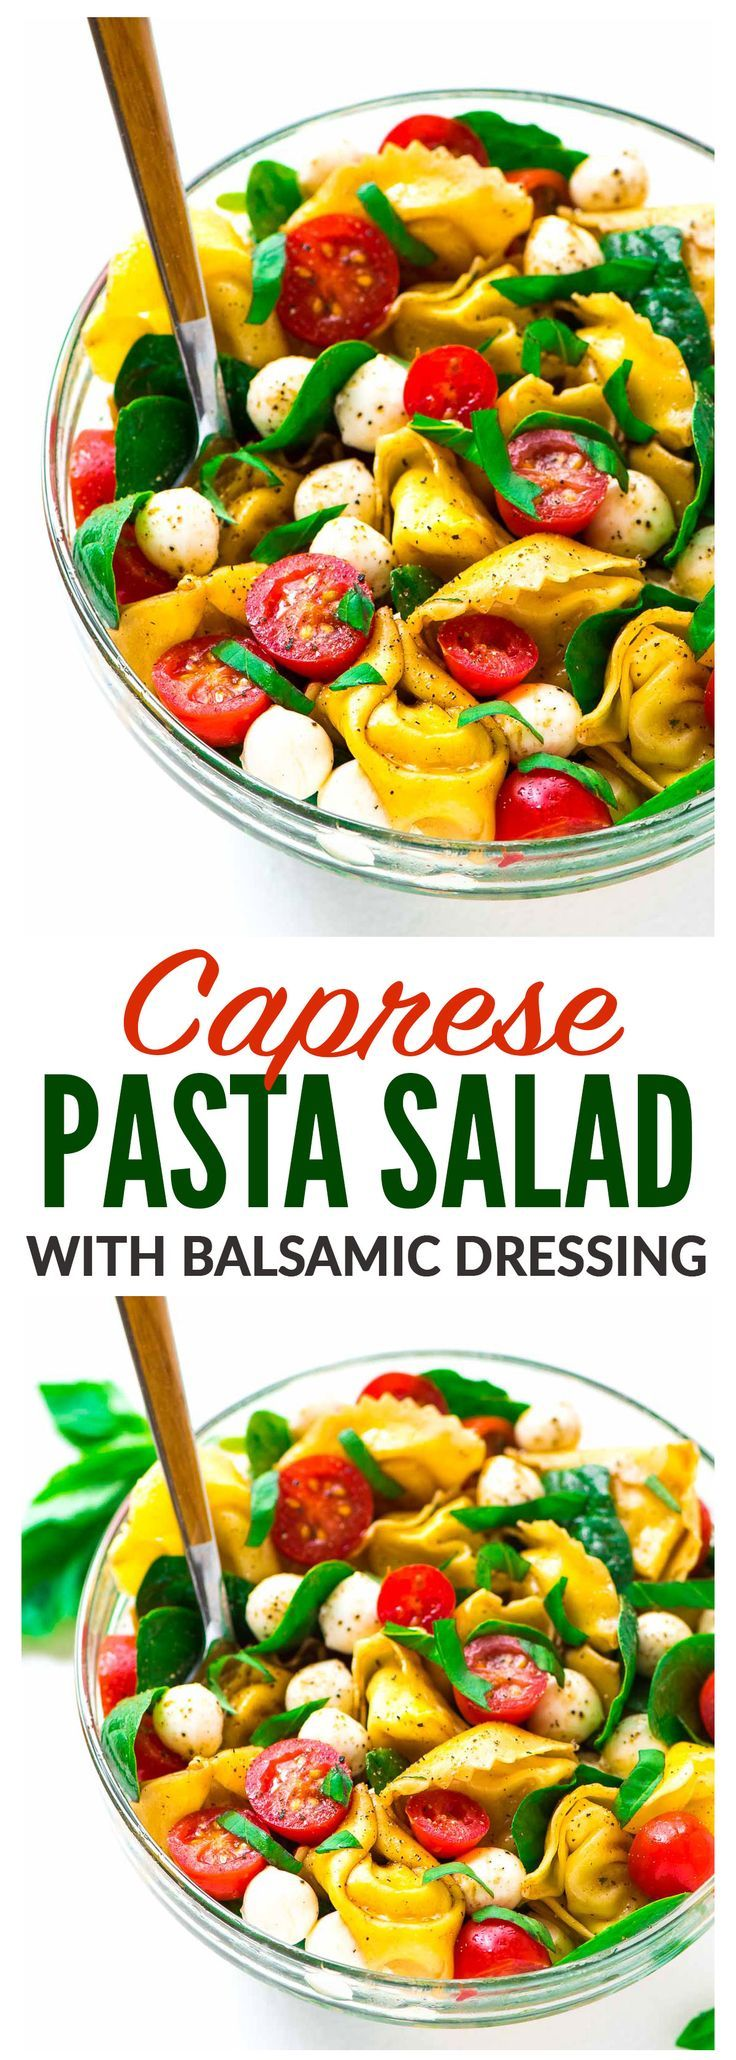 Caprese Pasta Salad with balsamic, tortellini, and fresh basil. The perfect combination of flavors. A fresh and healthy cold pasta salad that's great for summer appetizers, sides, and light dinners. Easy recipe and ready in 15 minutes! Recipe at wellplated.com | @wellplated